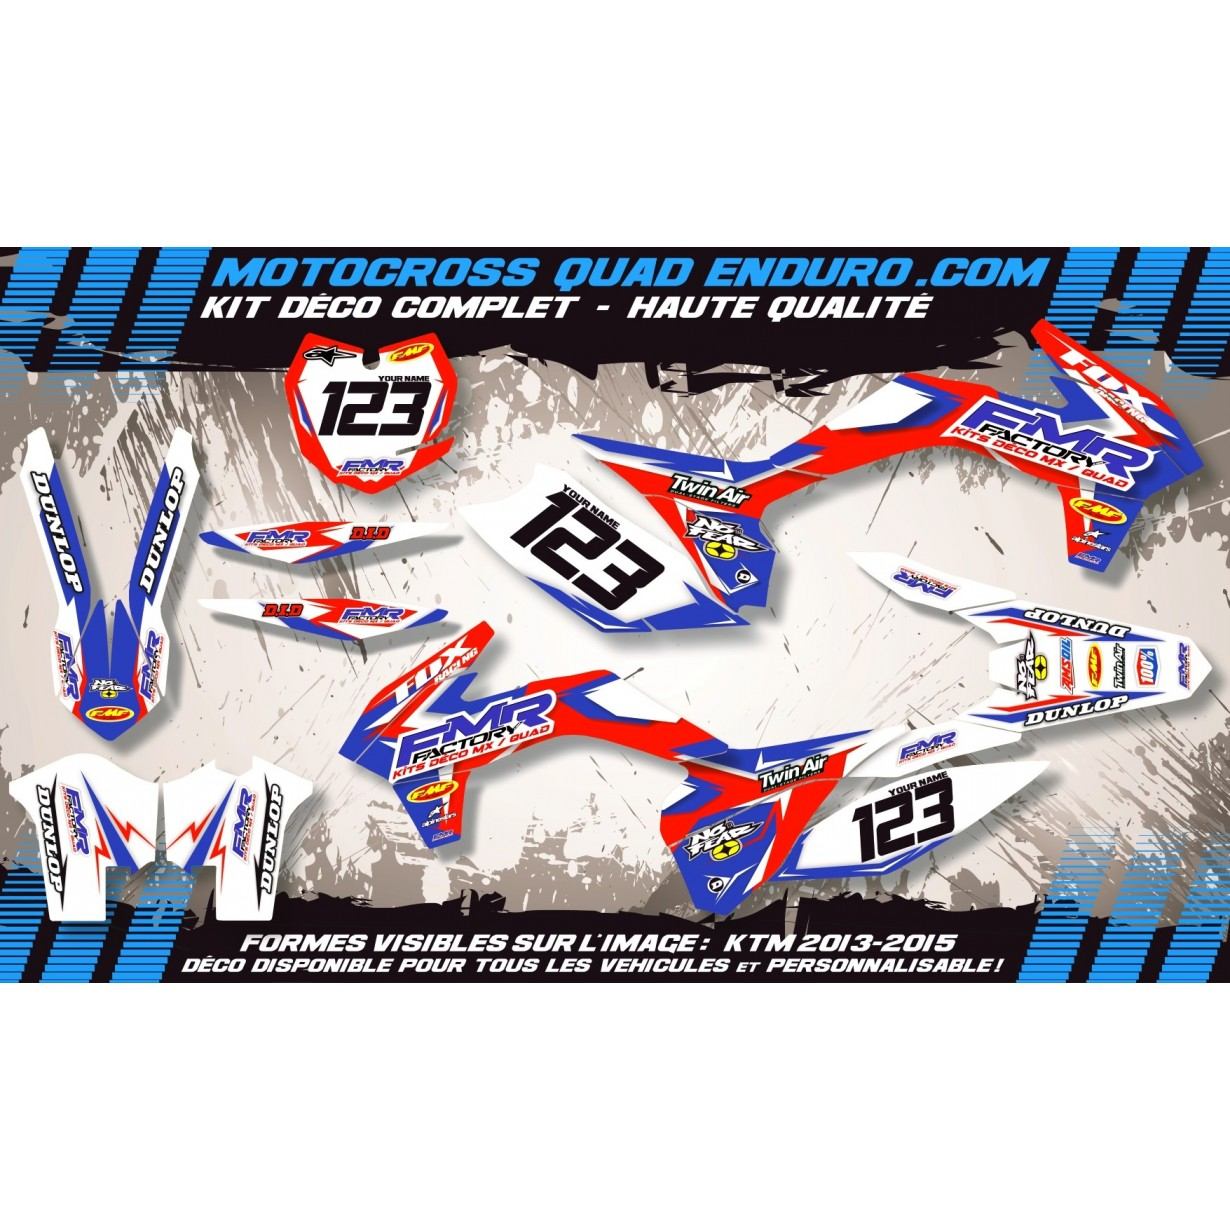 KIT DÉCO Perso MC 03-06 Fmr Factory MA13A